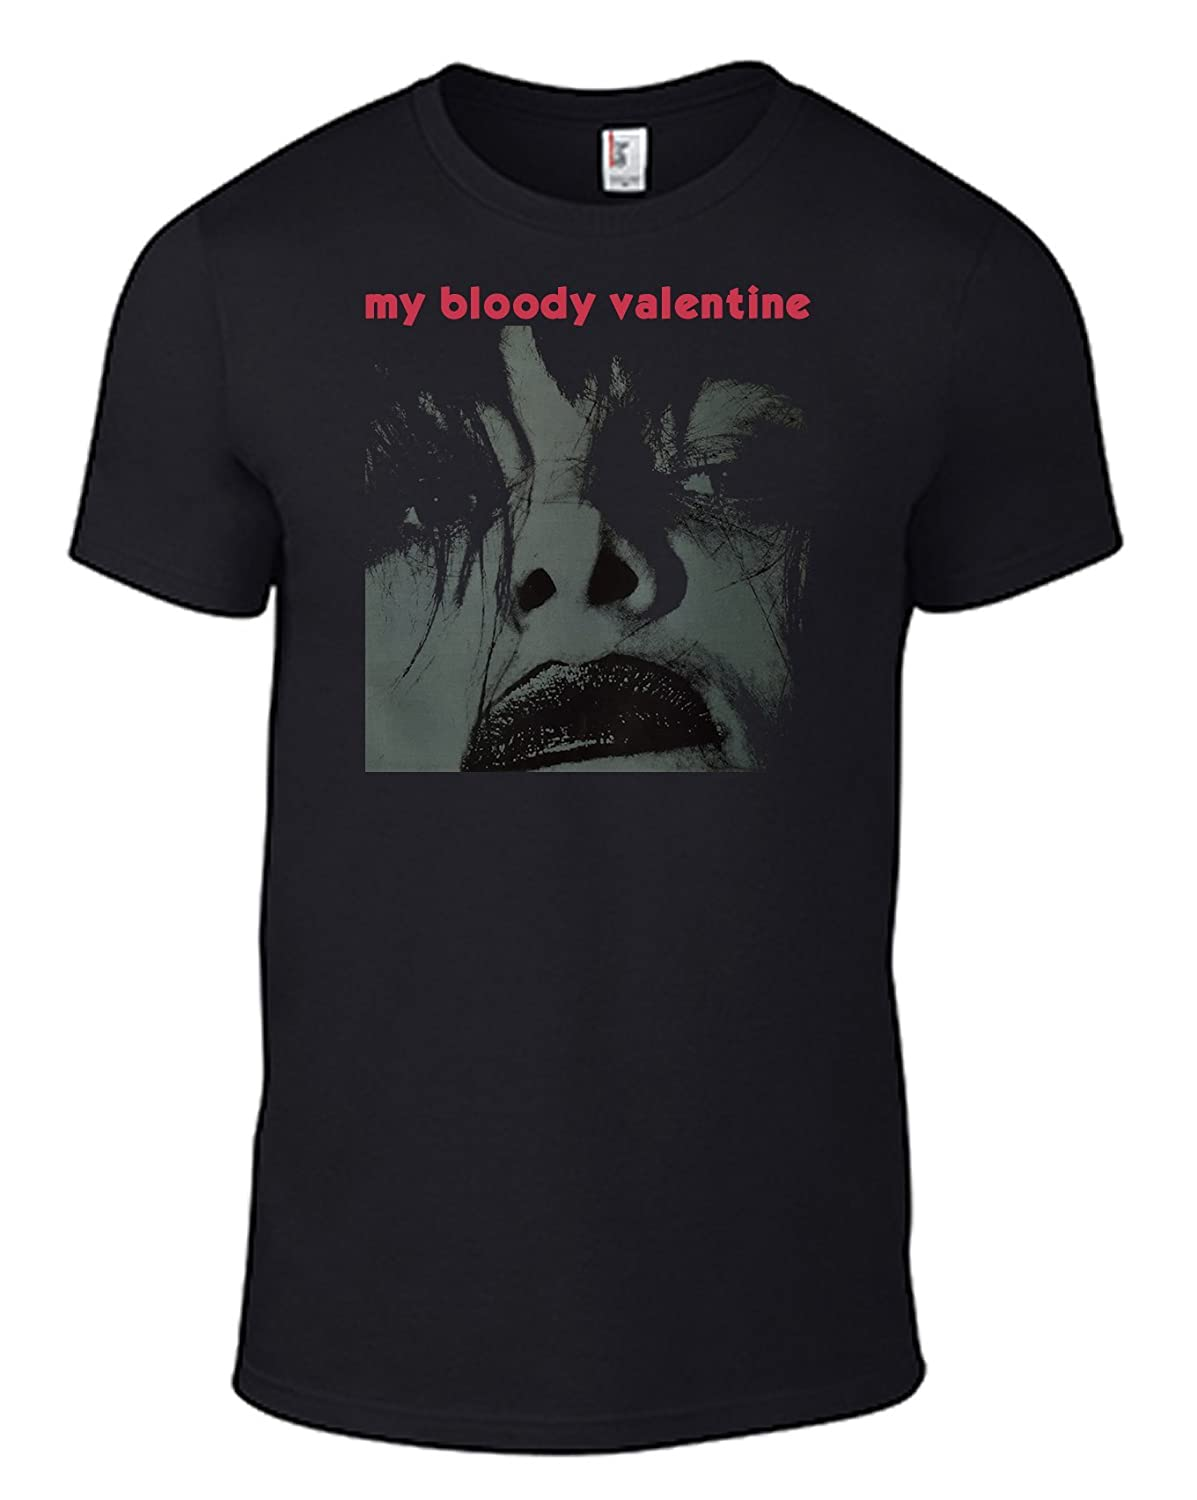 6ccea9247dba0 My Bloody Valentine Feed Me with Your Kisses Band T-Shirt Album CD Artwork  Image Cover & Logo Indie Tee Print B